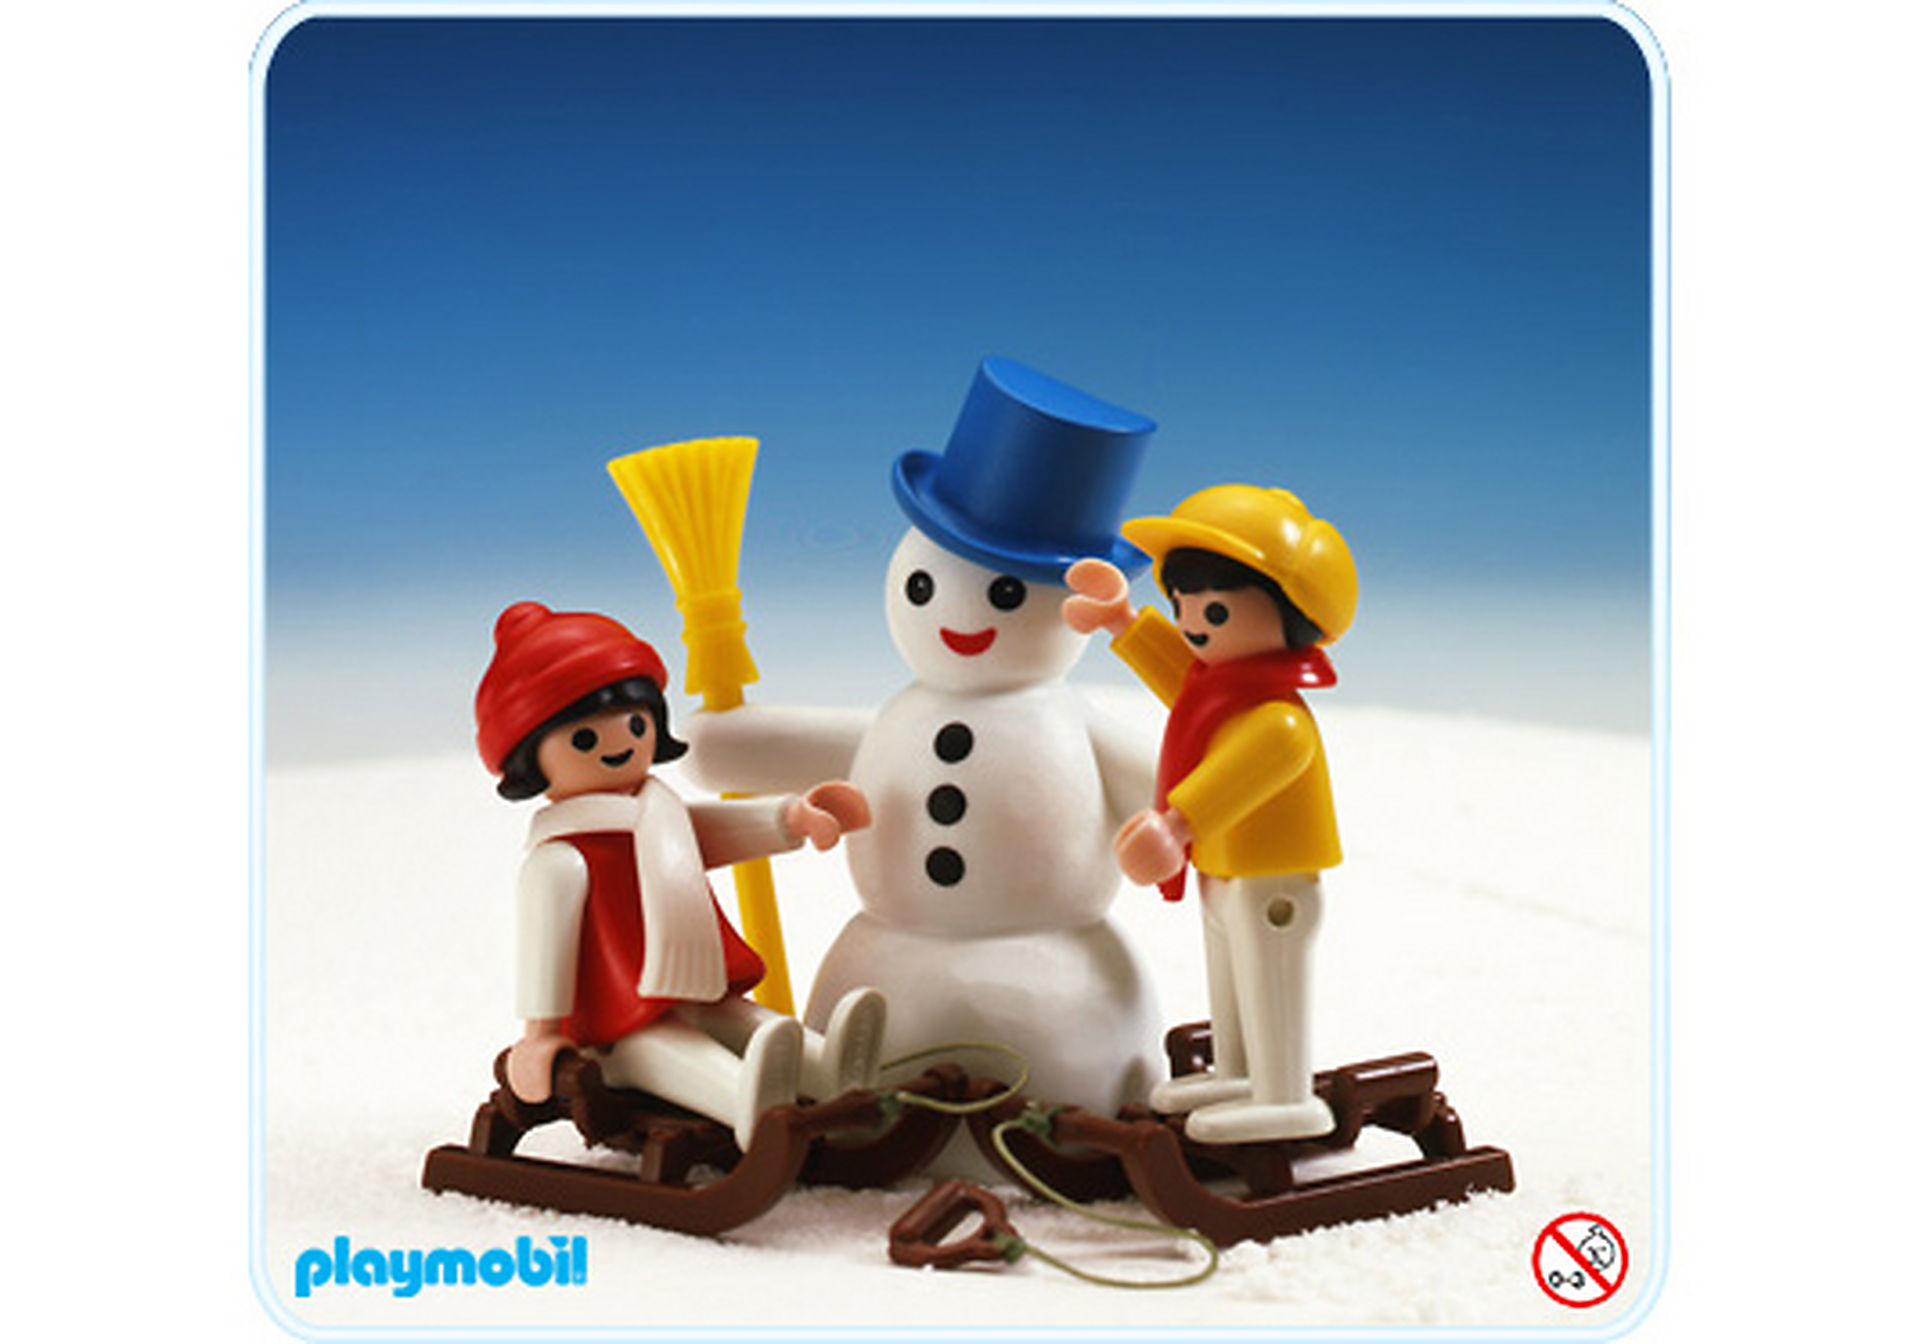 http://media.playmobil.com/i/playmobil/3393-A_product_detail/2 Kinder/Schneemann